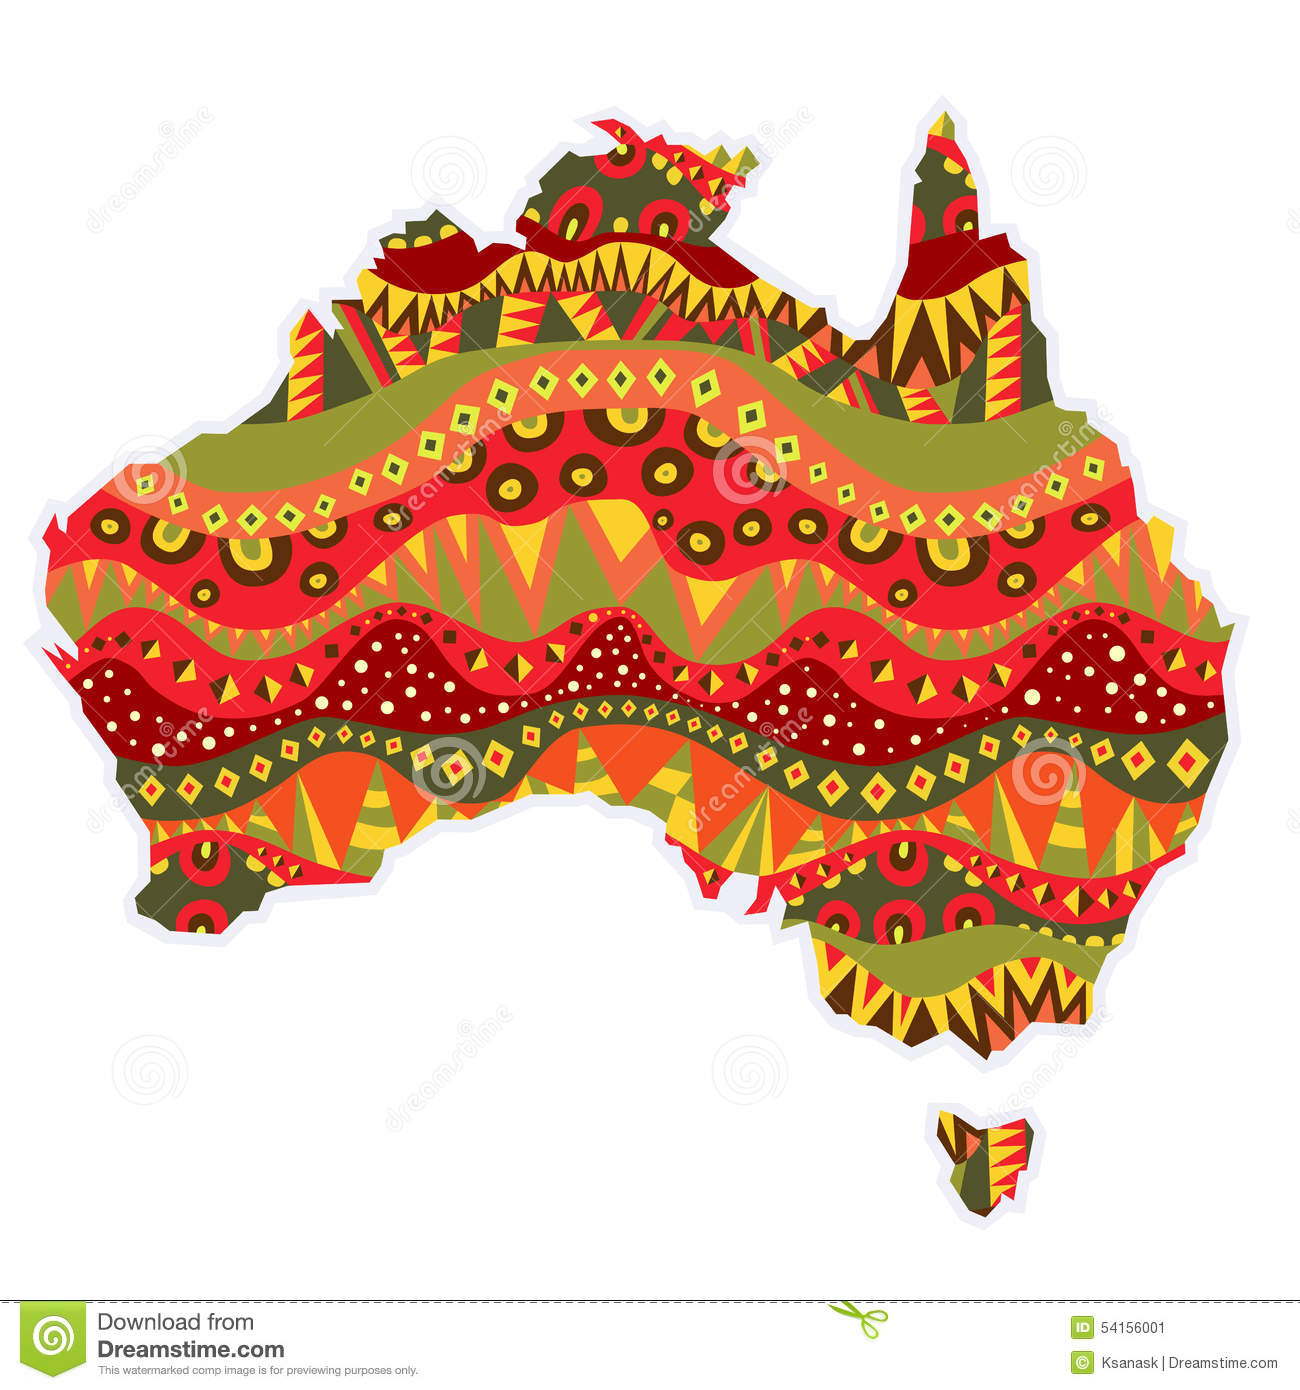 Patterned Australia Continent Stock Vector - Illustration of ...